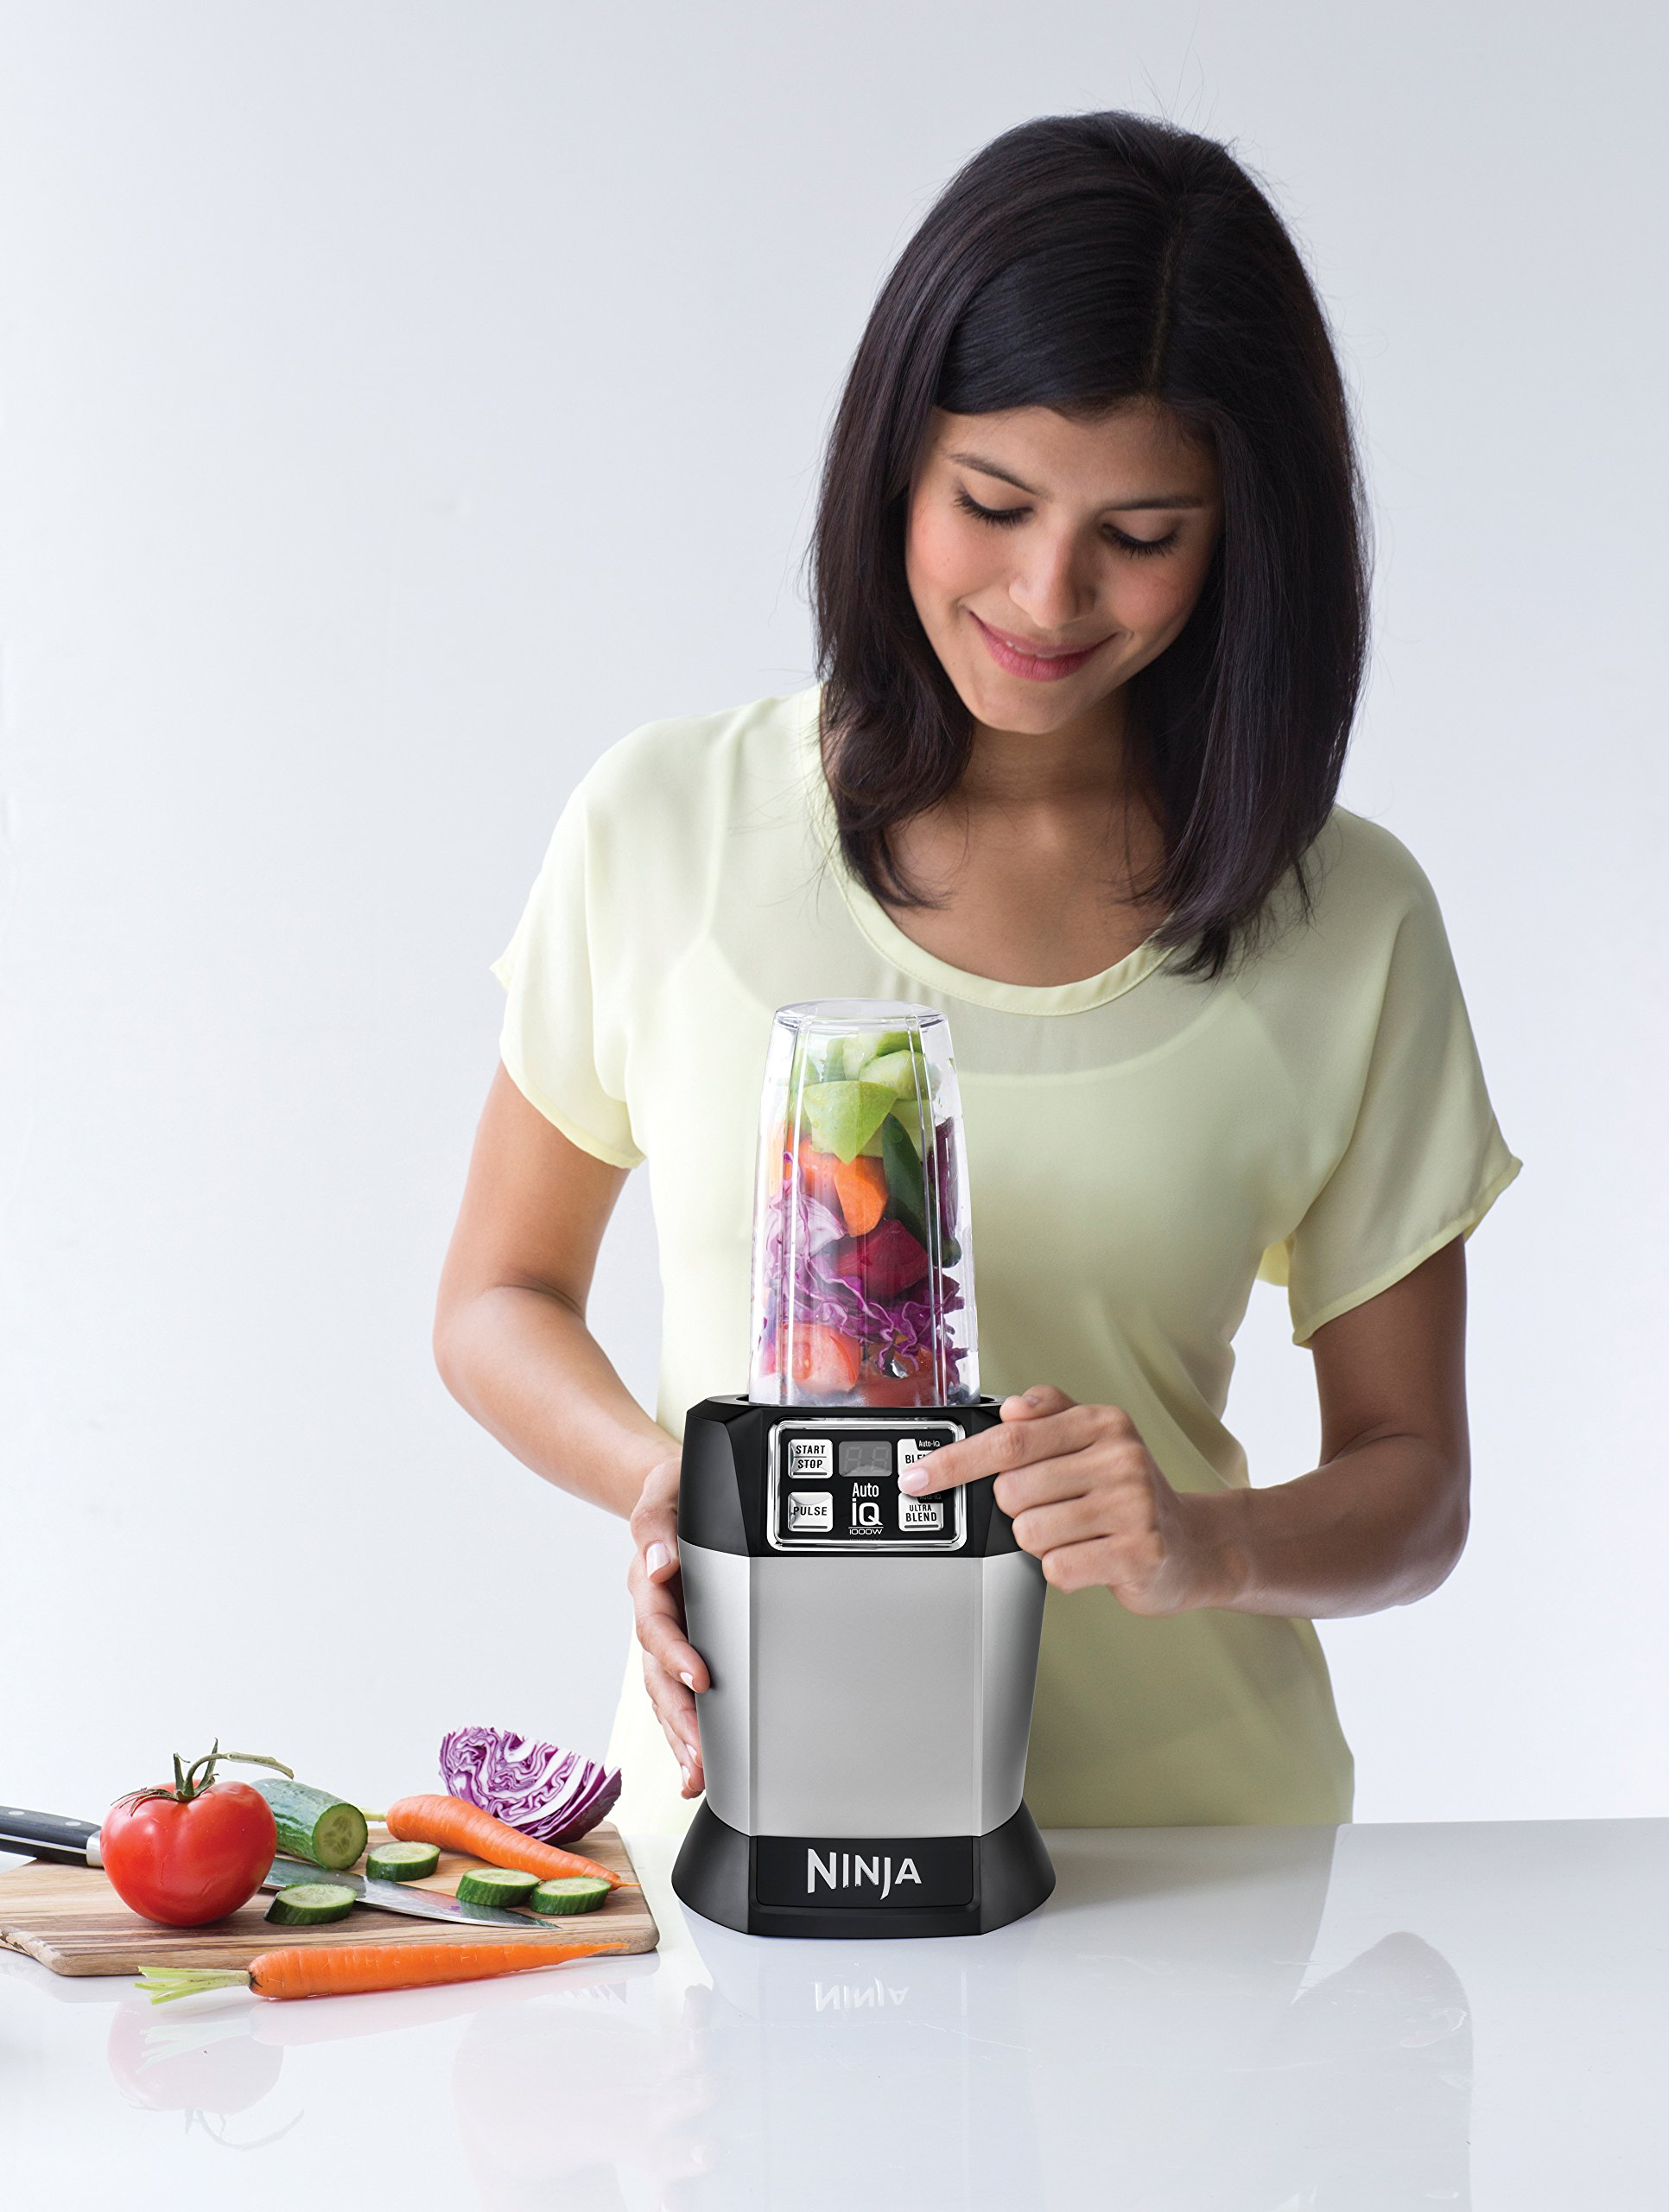 Nutri Ninja Personal Blender with 1000-Watt Auto-iQ Base to Extract Nutrients for Smoothies, Juices and Shakes and 18, 24, and 32-Ounce Cups (BL482) by SharkNinja (Image #2)